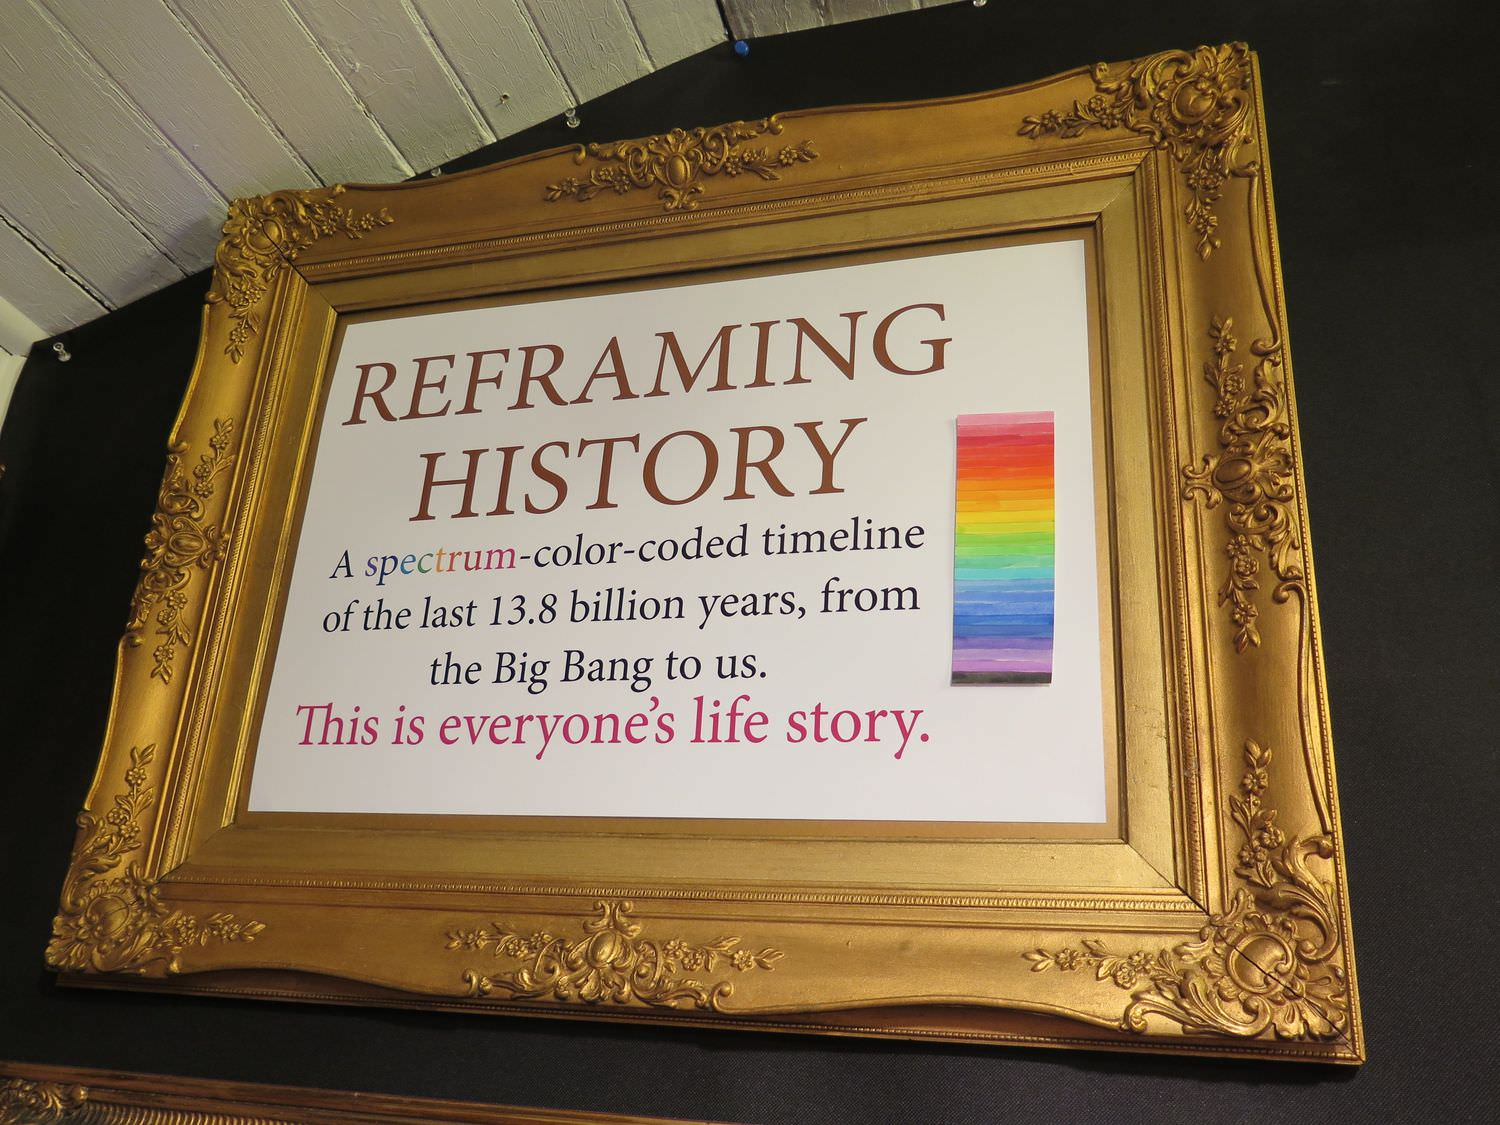 We introduced our gold-framed, spectrum-color-coded Reframing History timeline of the universe in Northeast Harbor in 2015.